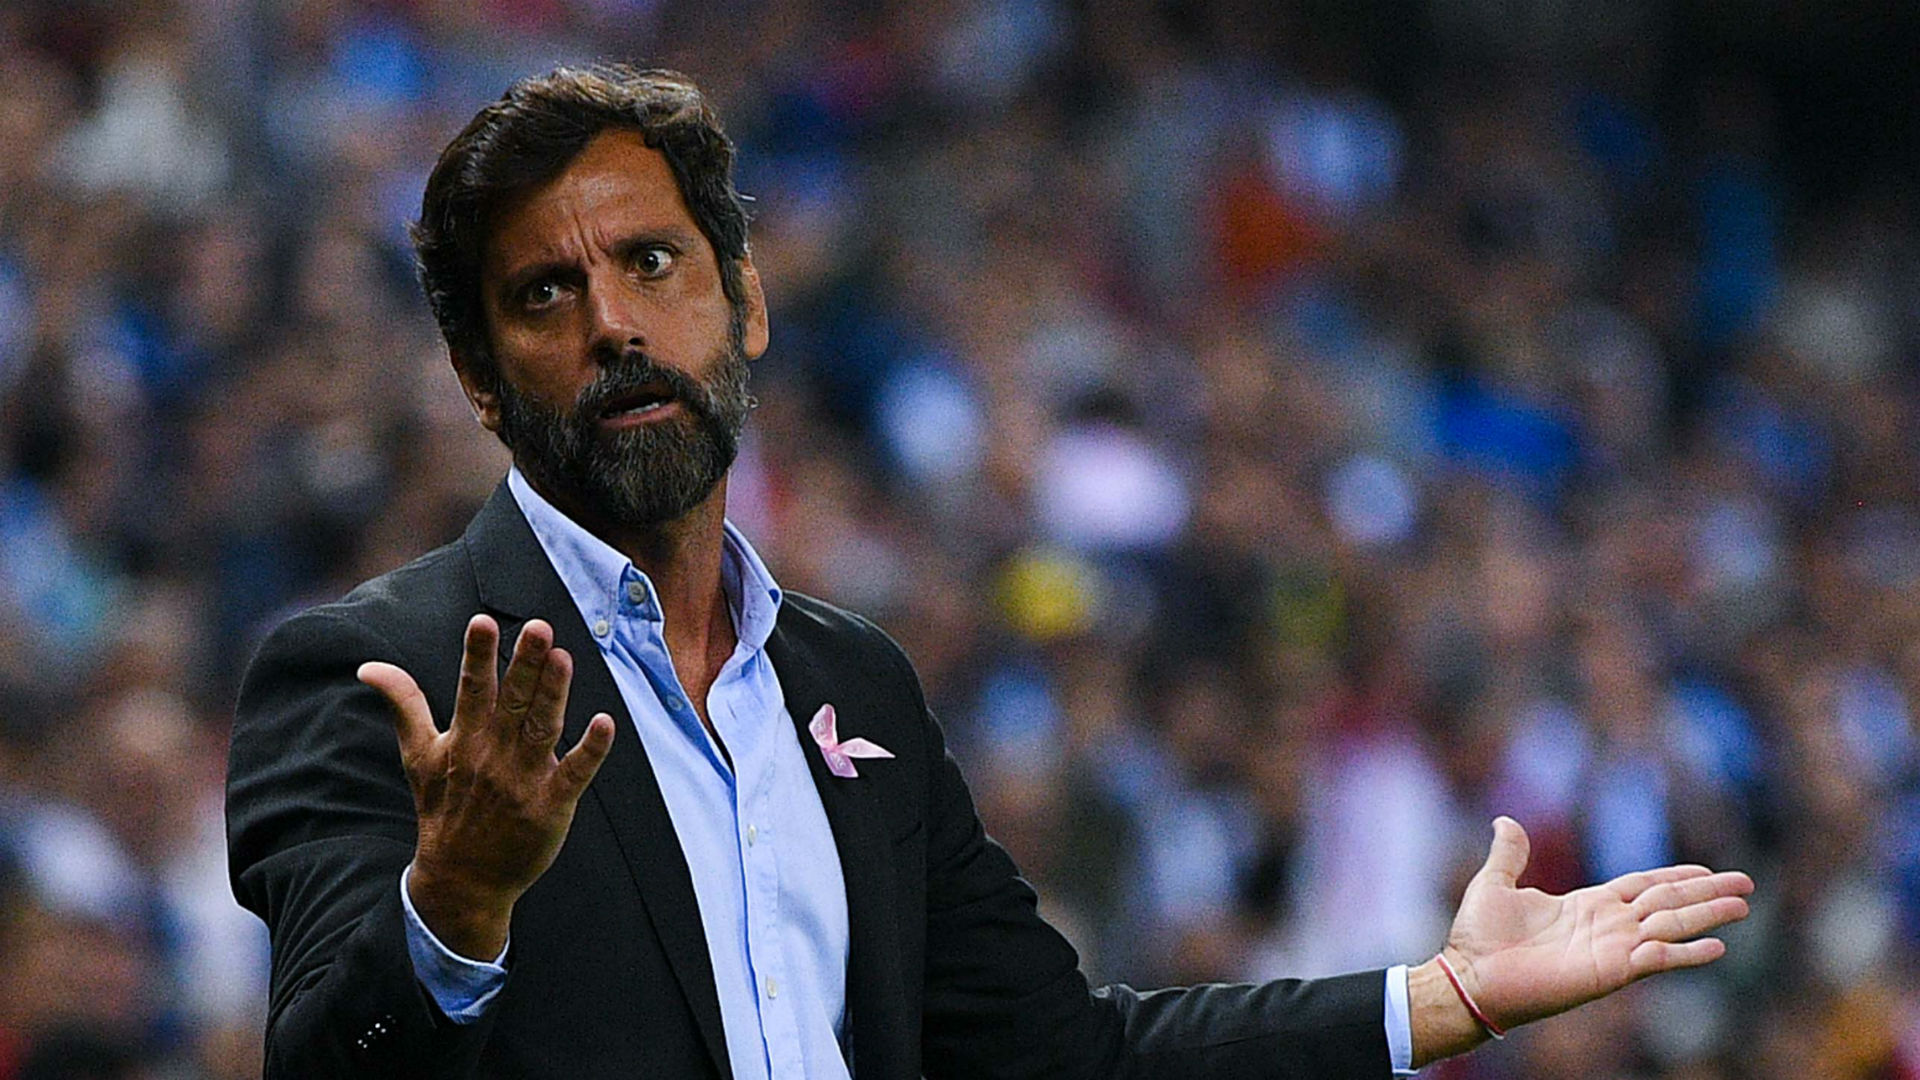 Espanyol boss Quique Sanchez Flores turns down move to Stoke City